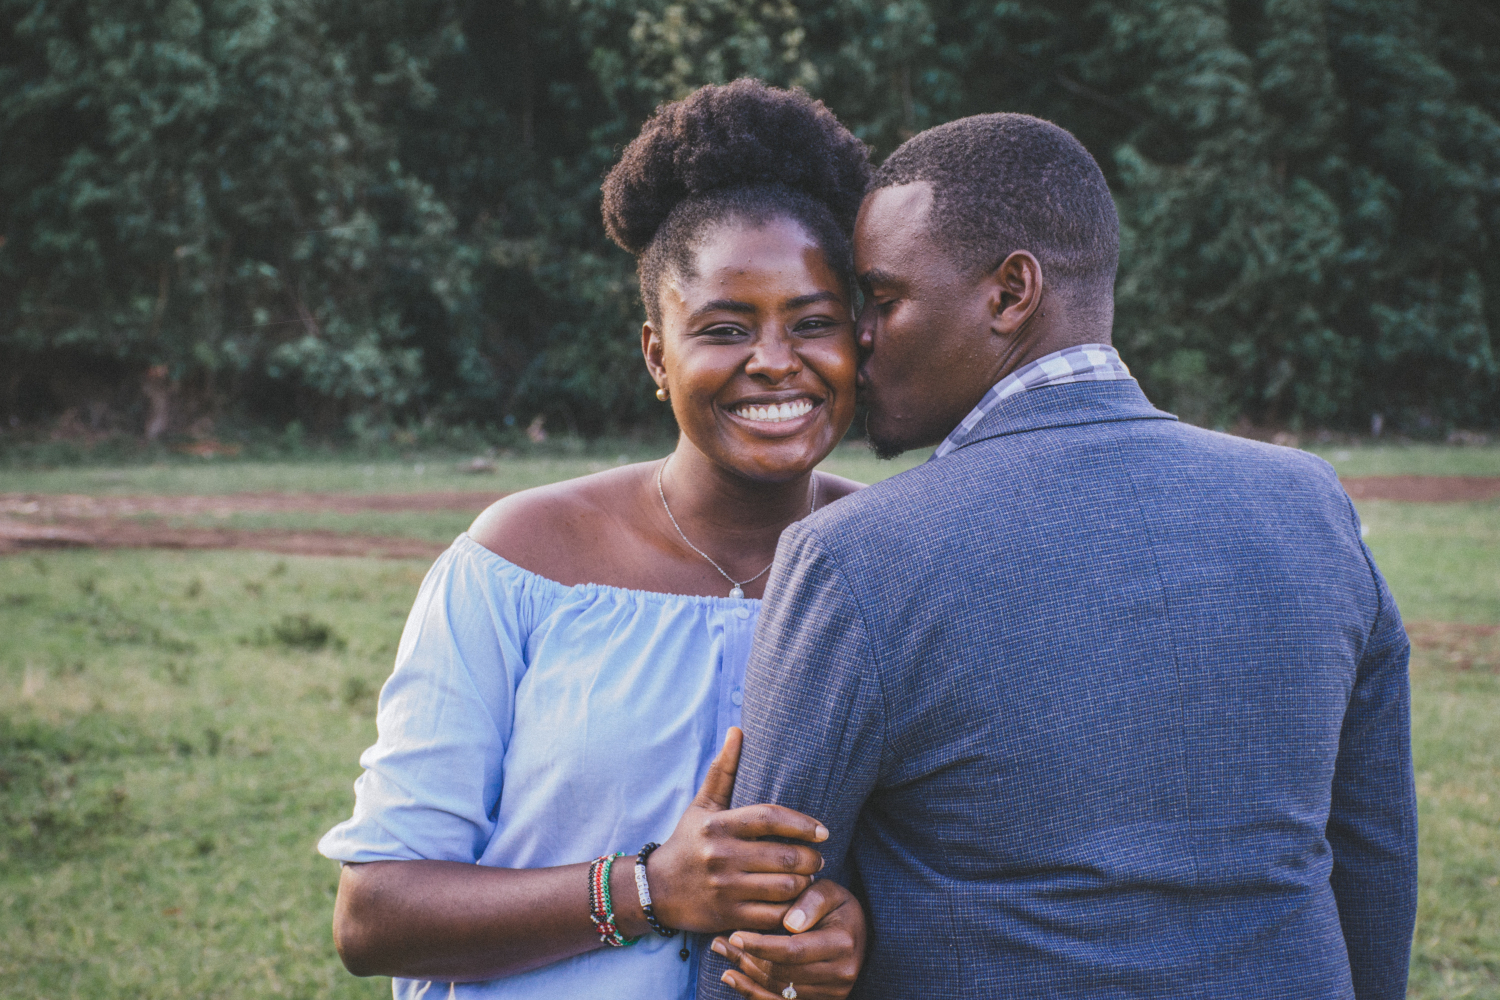 Black couple wearing blue, smiling and being affectionate with each other.